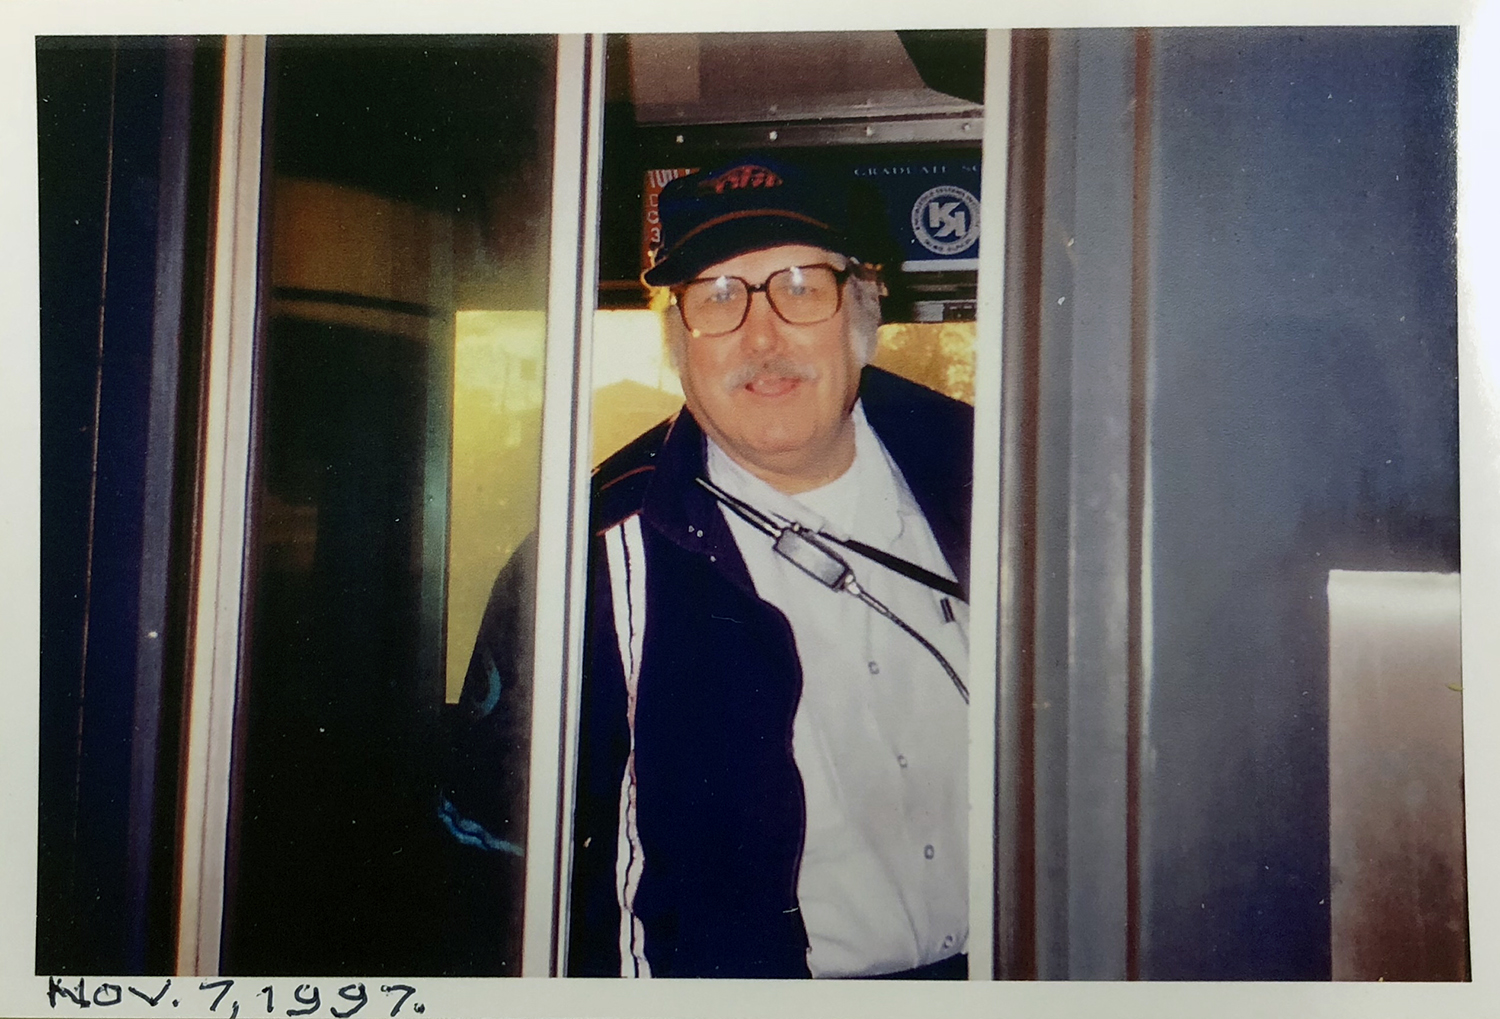 Walter Collins ready to depart from the 95th St. terminal for Howard St. in 1997. (Courtesy Walter Collins)